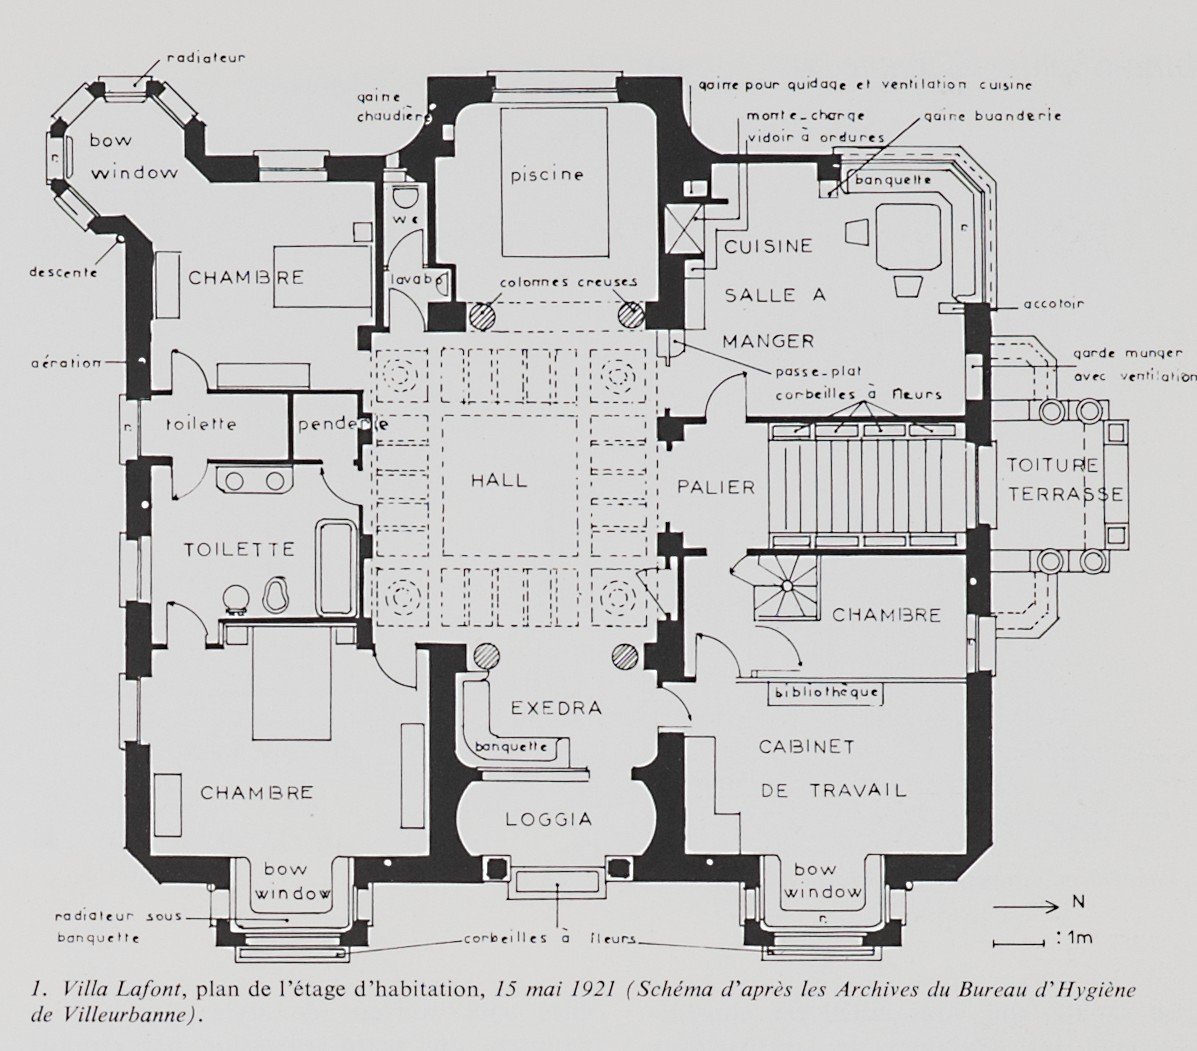 Les plans des villas modernes maison moderne for Les plans des villas modernes